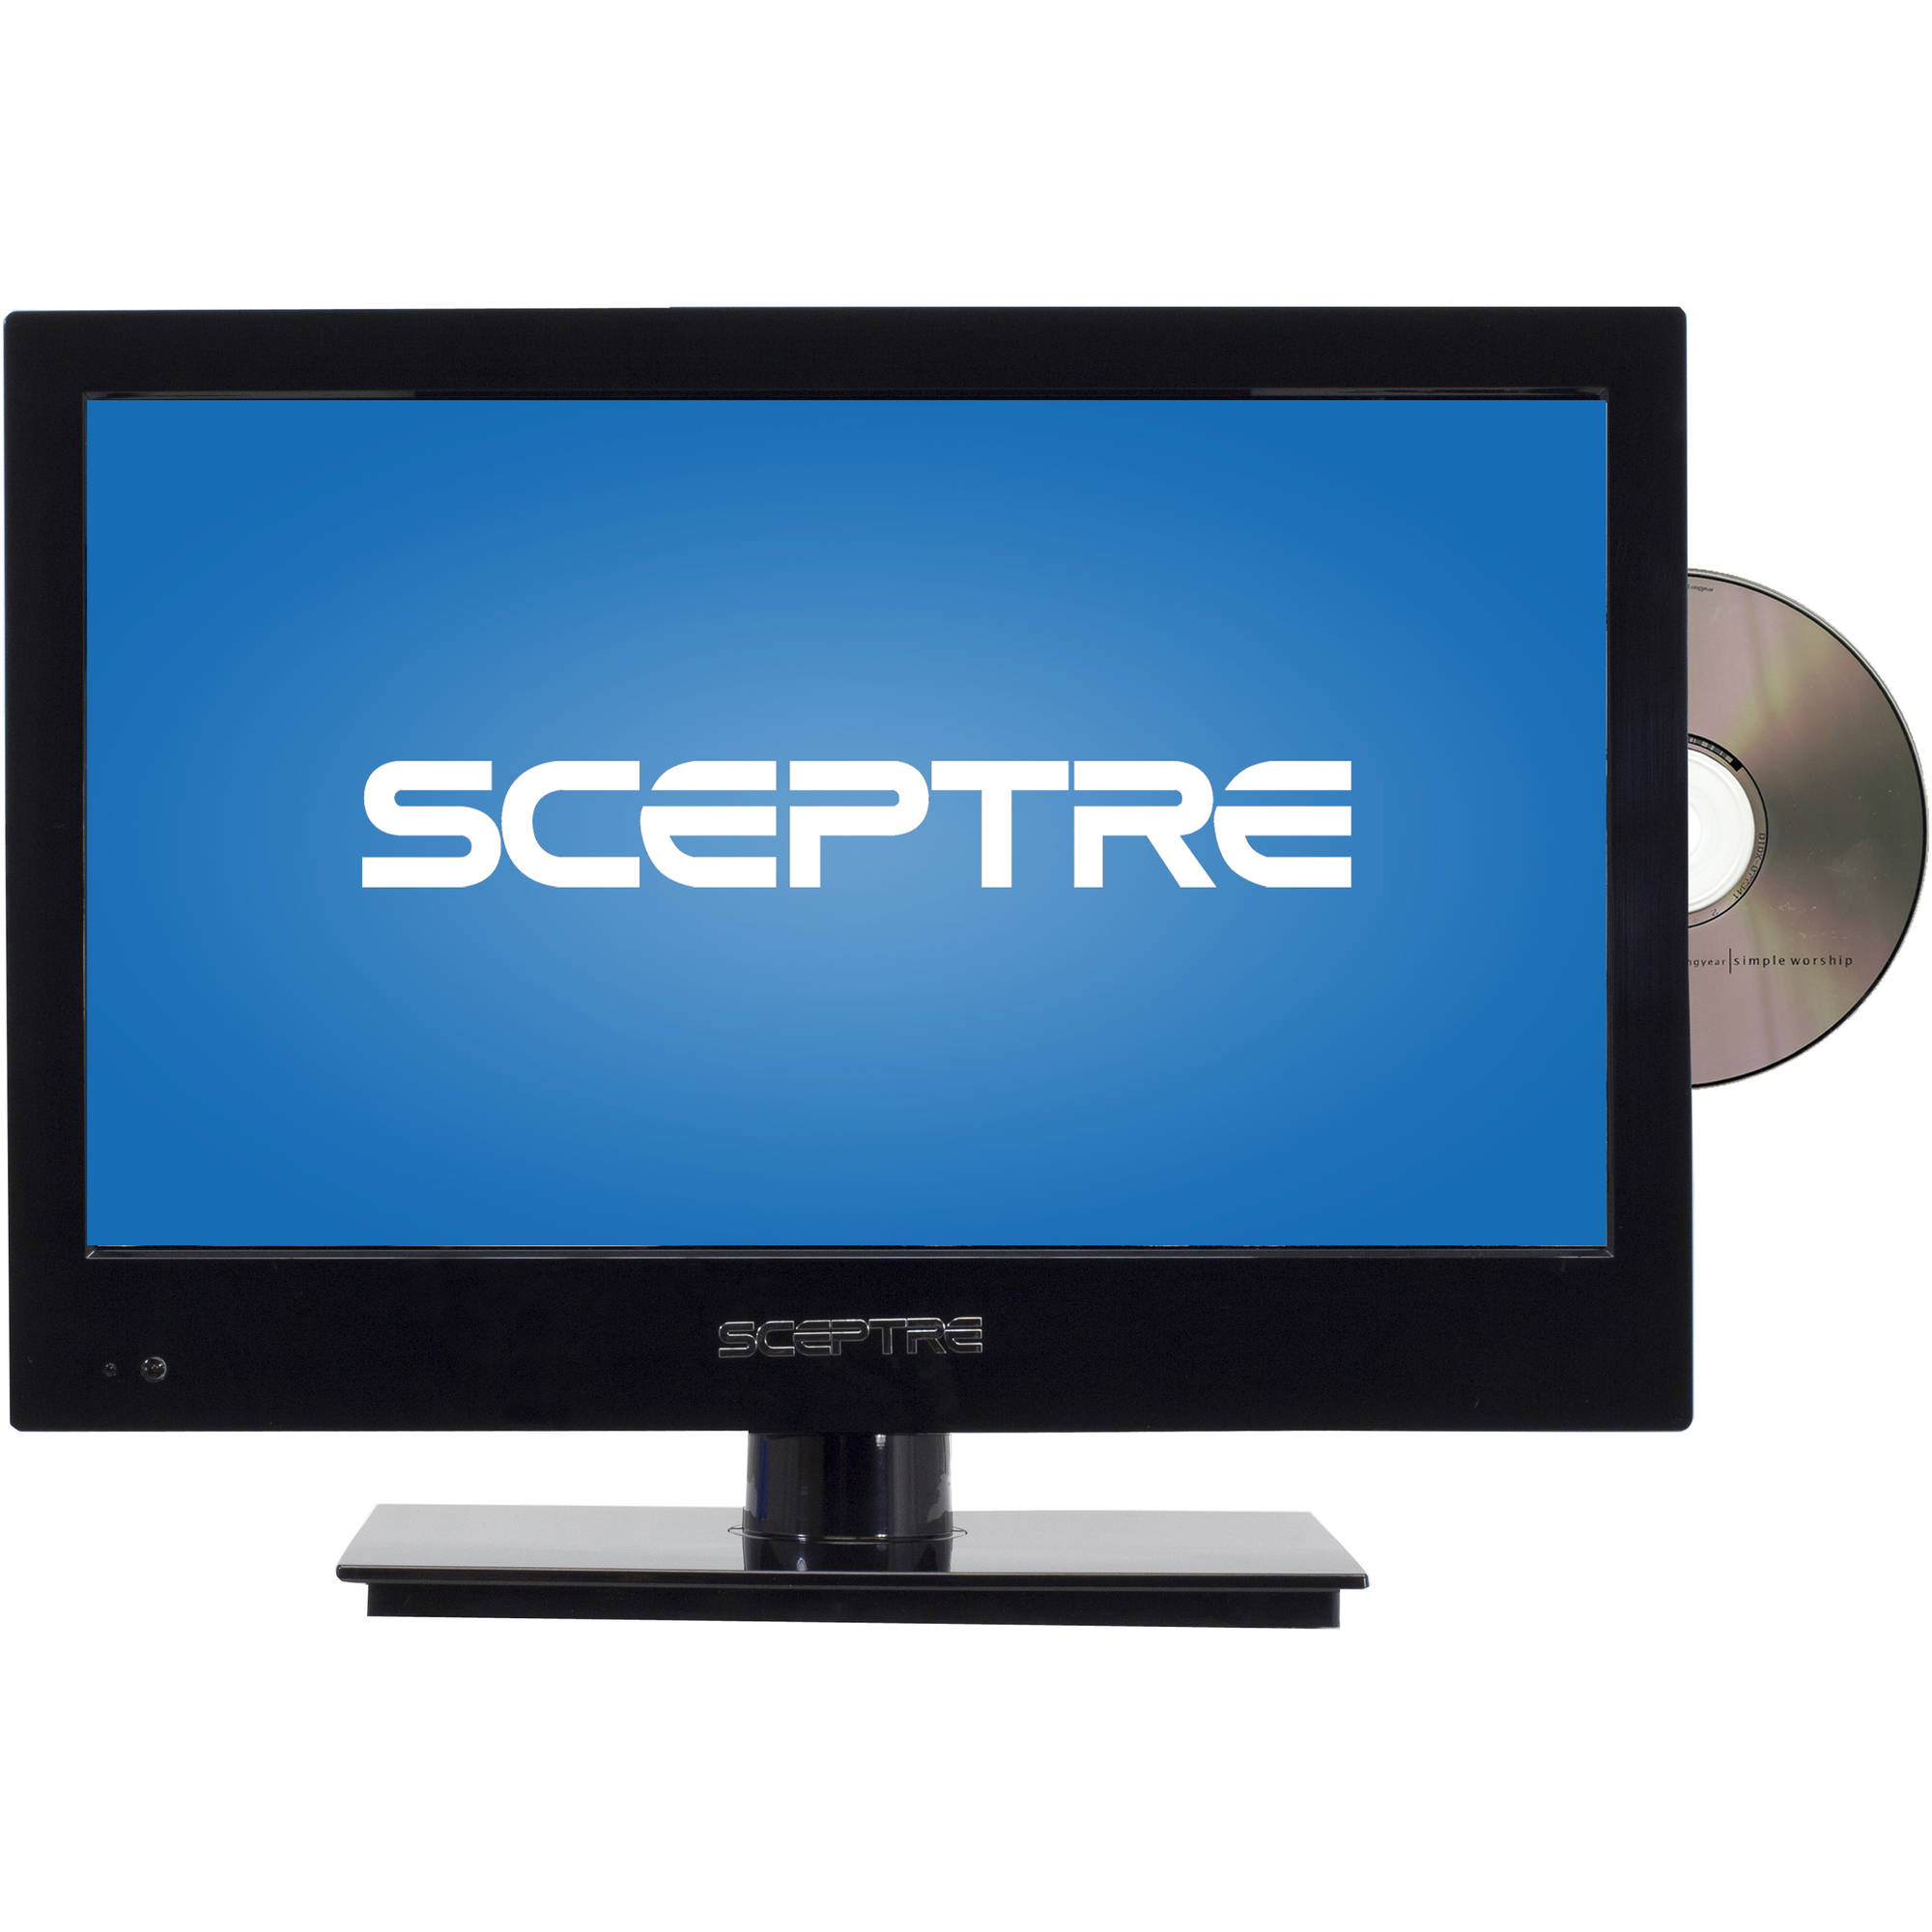 "Sceptre 16"" Class LED 720p 60Hz HDTV with Built-In DVD Player, E165BD-M"